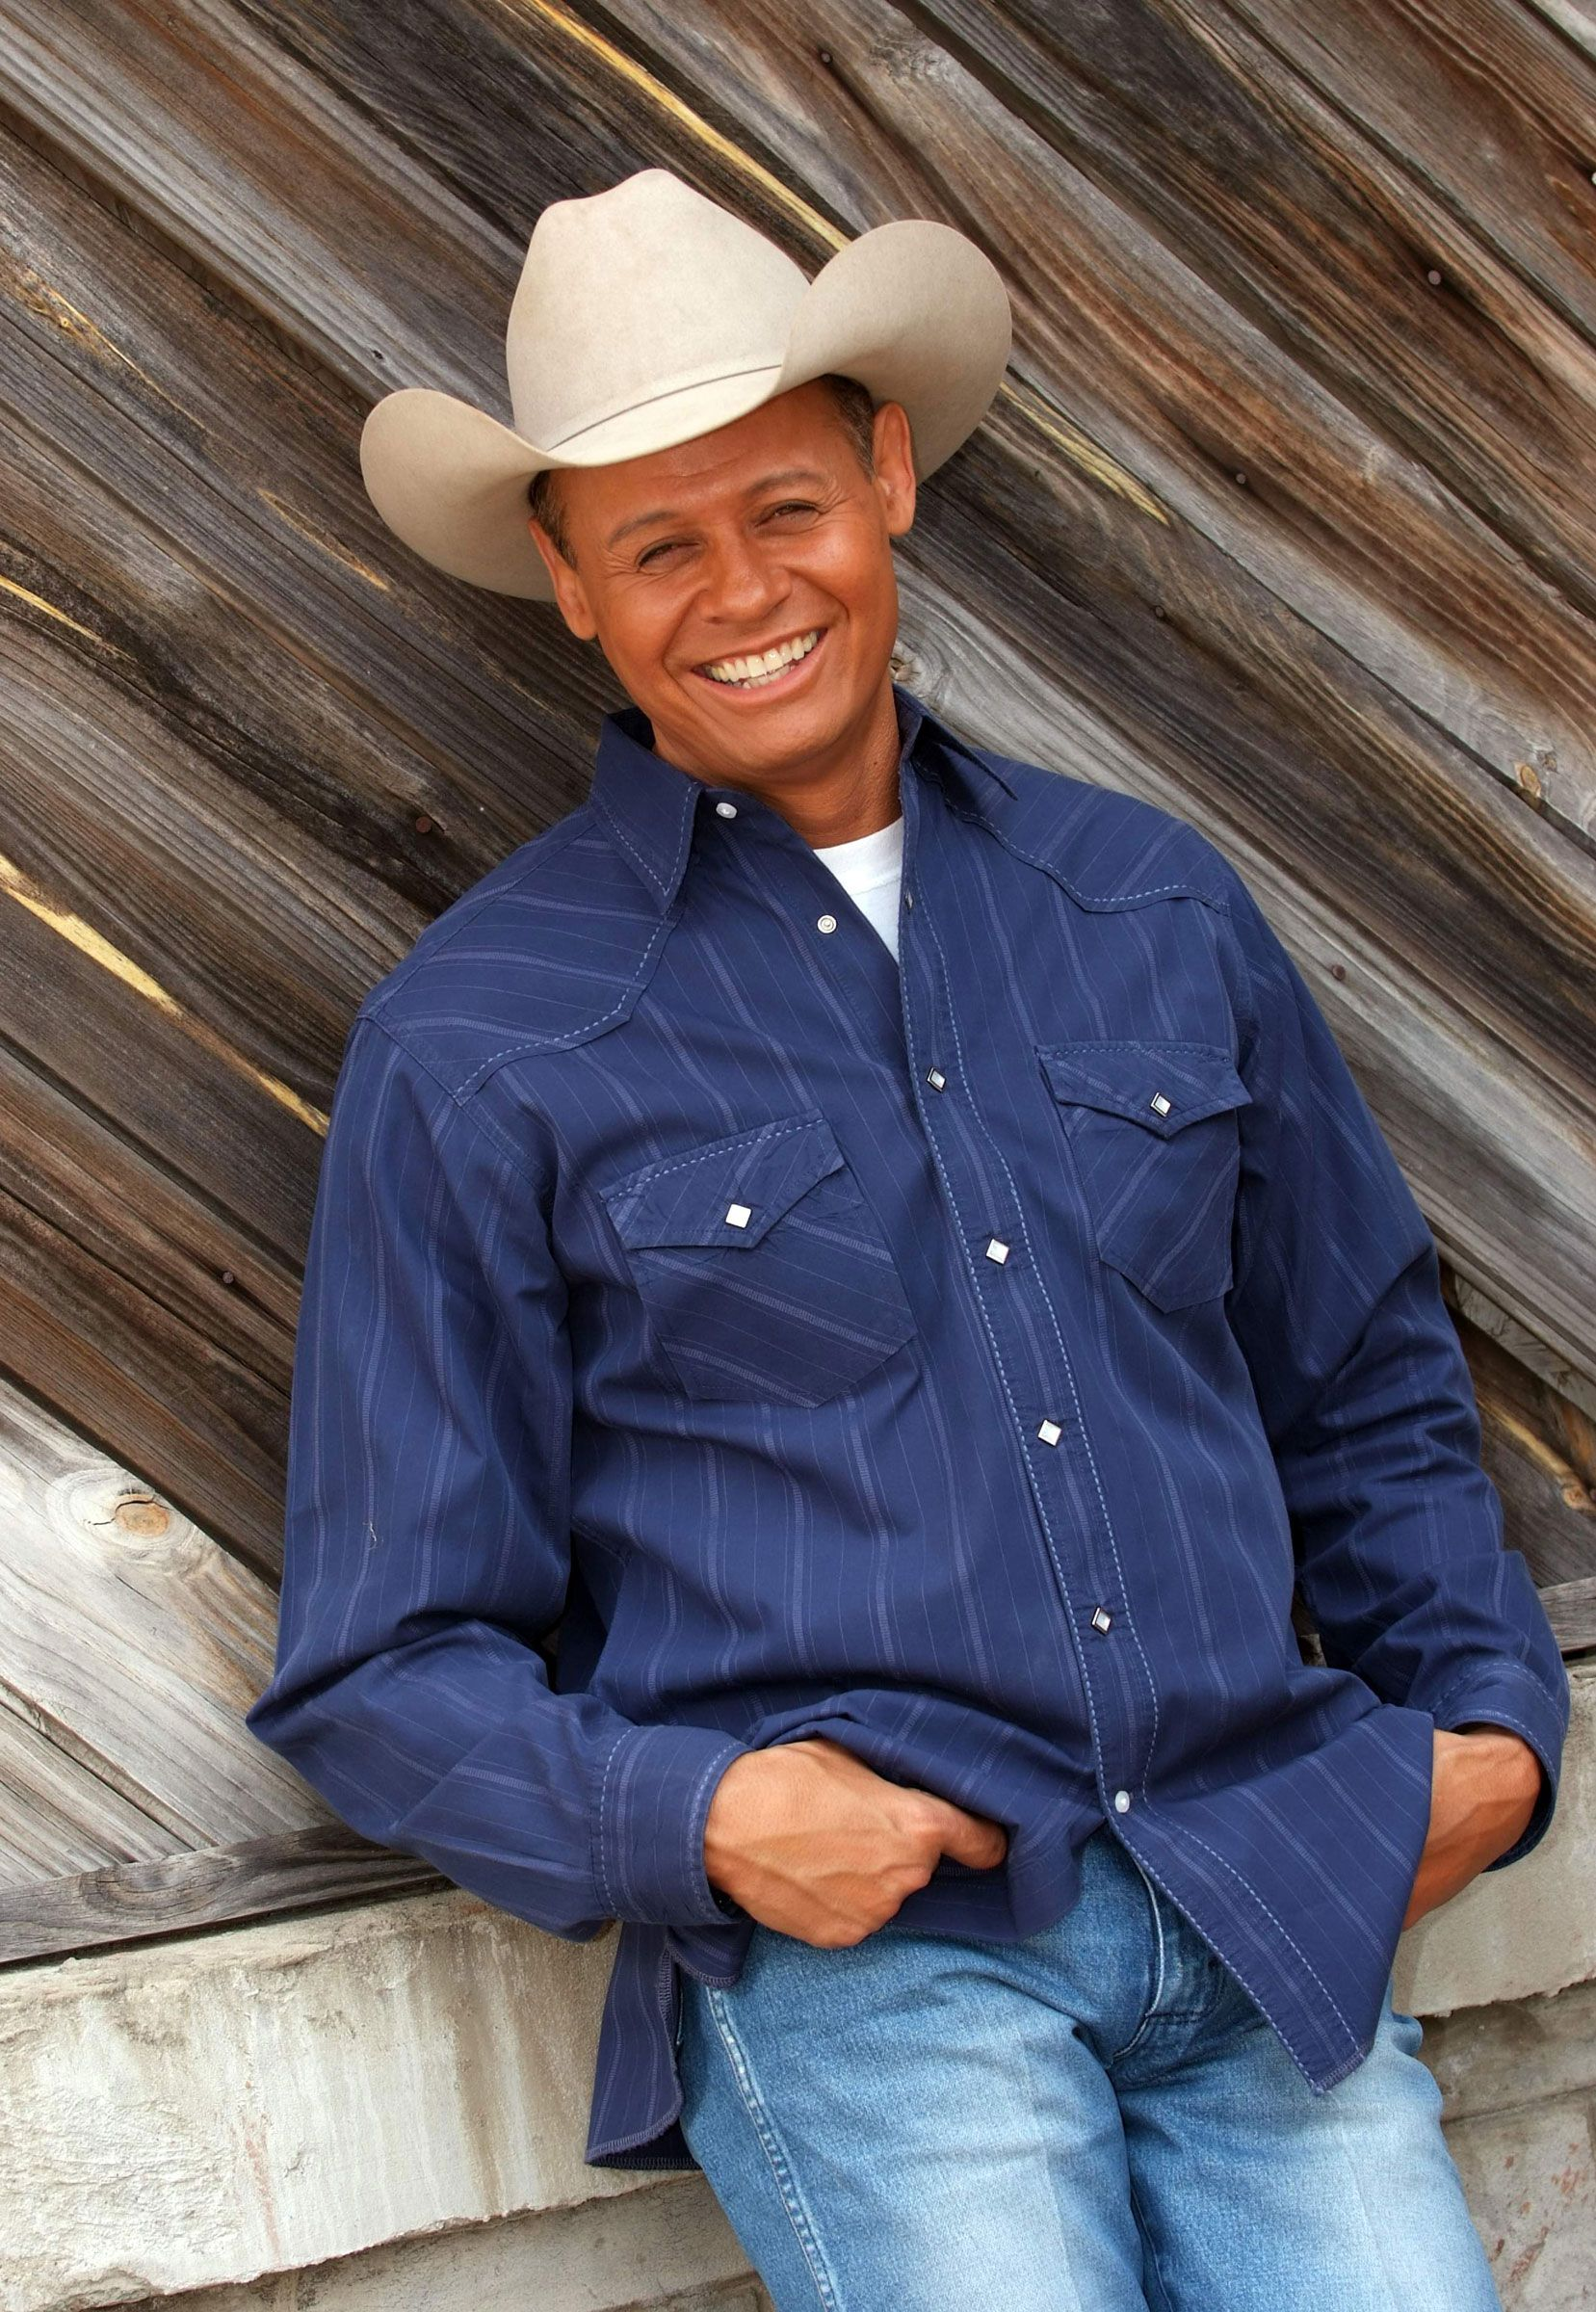 Neal McCoy will provide entertainment at the 20th annual